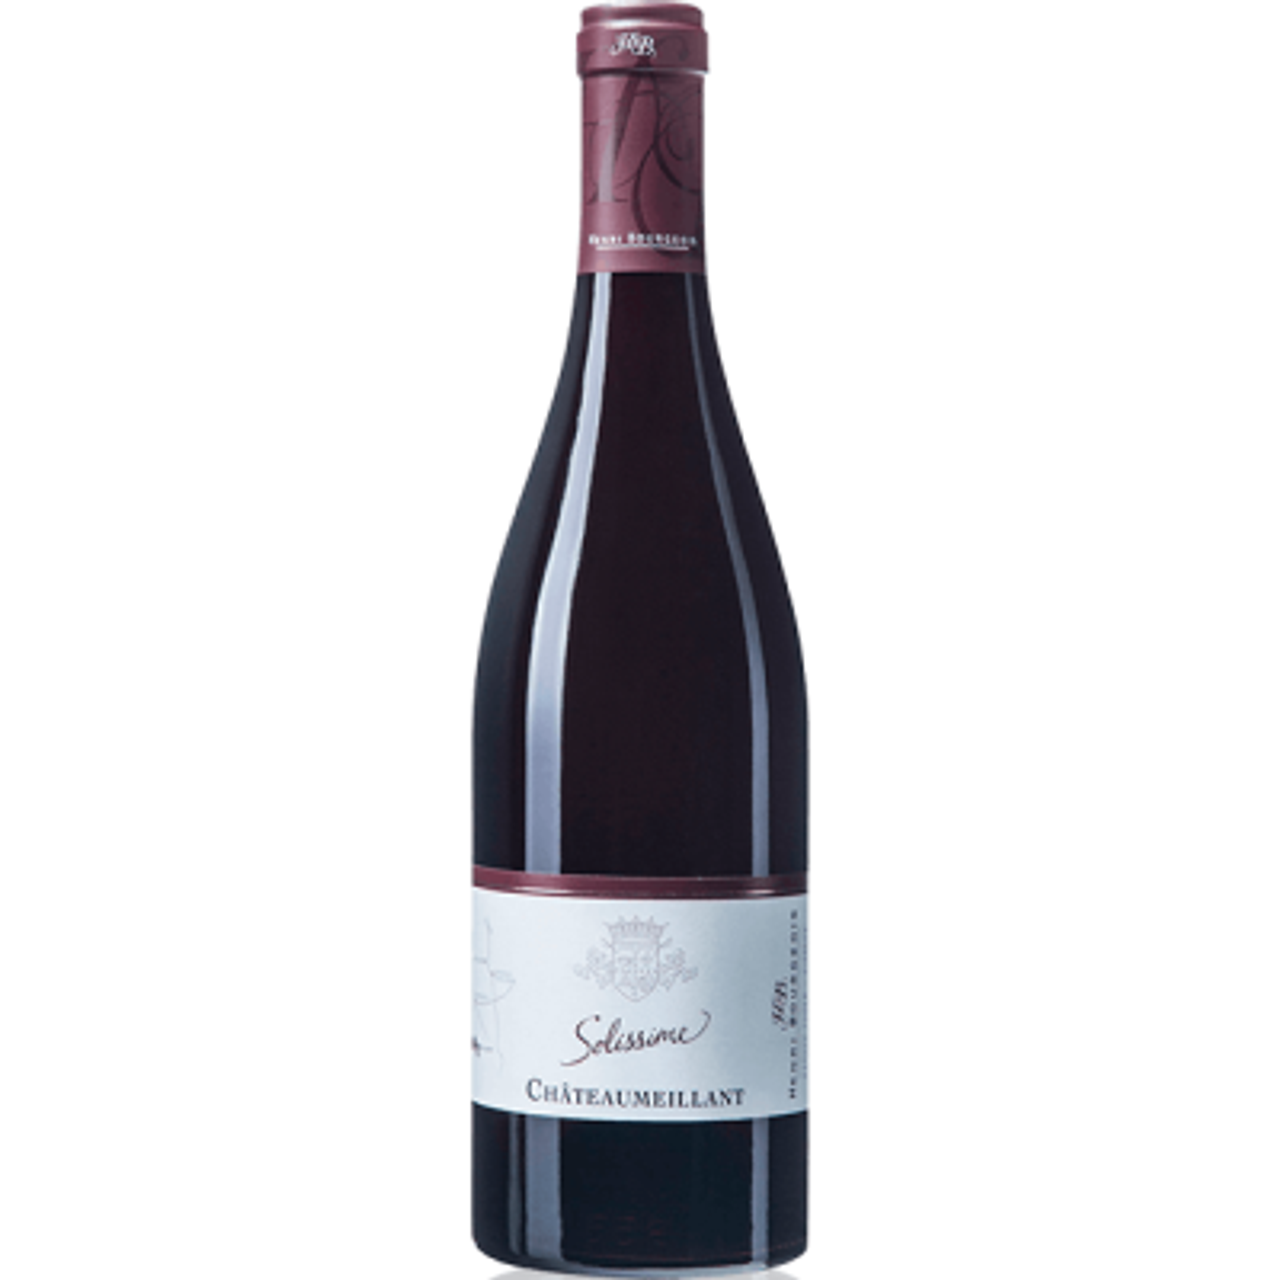 Henri Bourgeois, 'Solissime' Chateaumeillant Rouge 2015